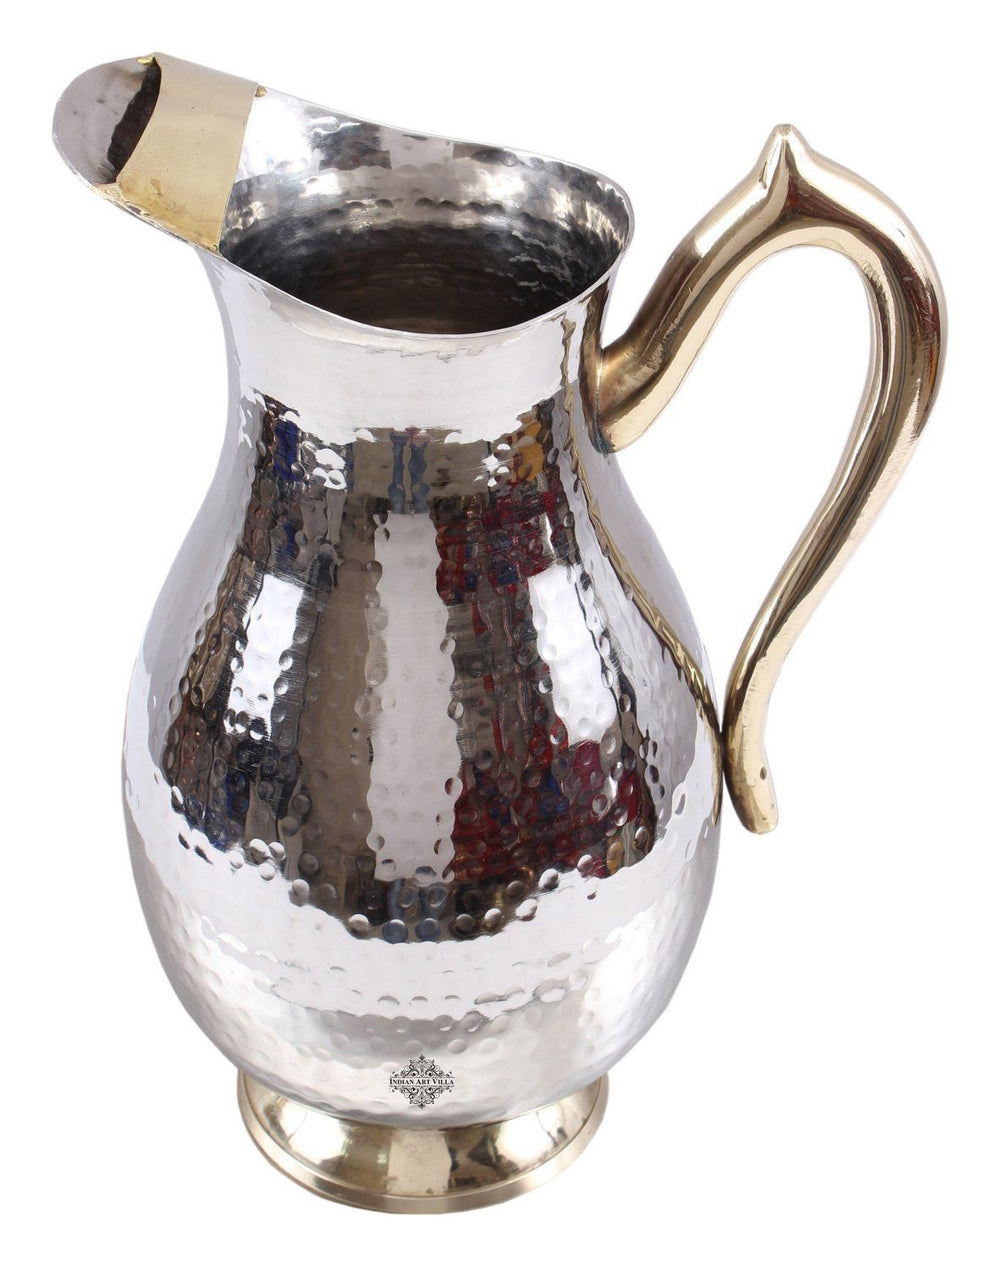 Steel Royal Hammered Jug Pitcher with Brass Handle Serving Water 64 Oz Steel Jugs Indian Art Villa